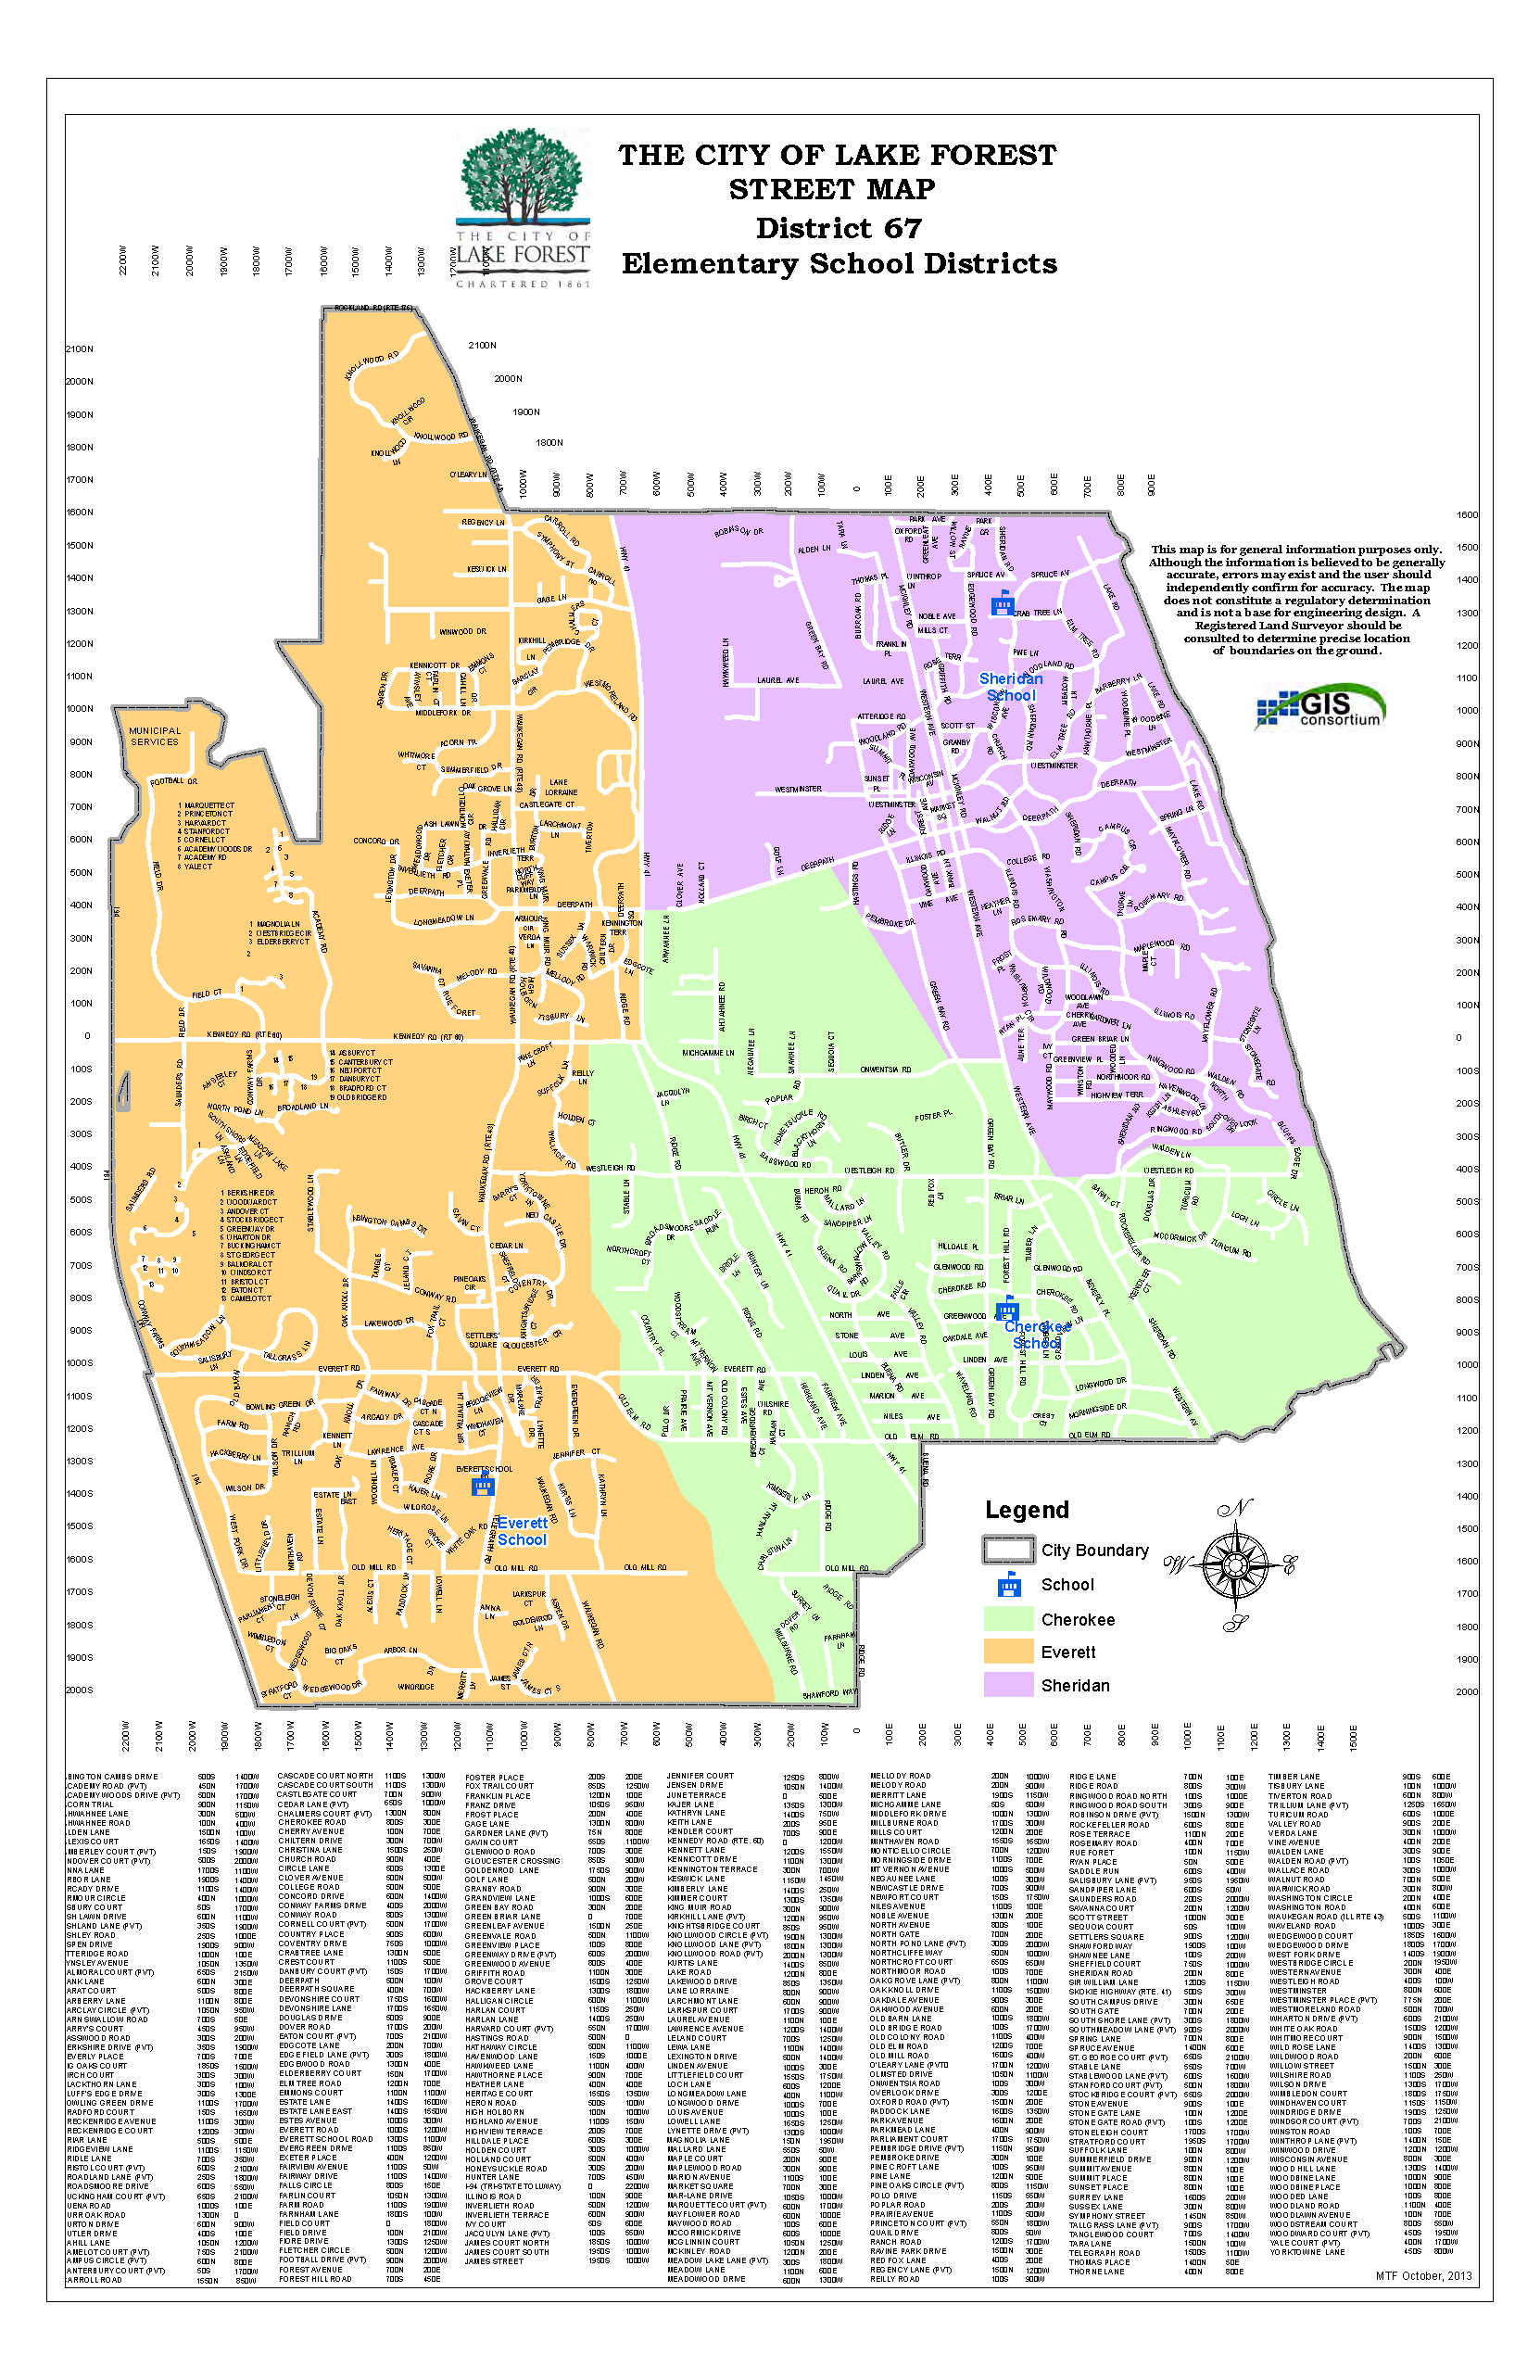 Boundary Map for Lake Forest School District 67